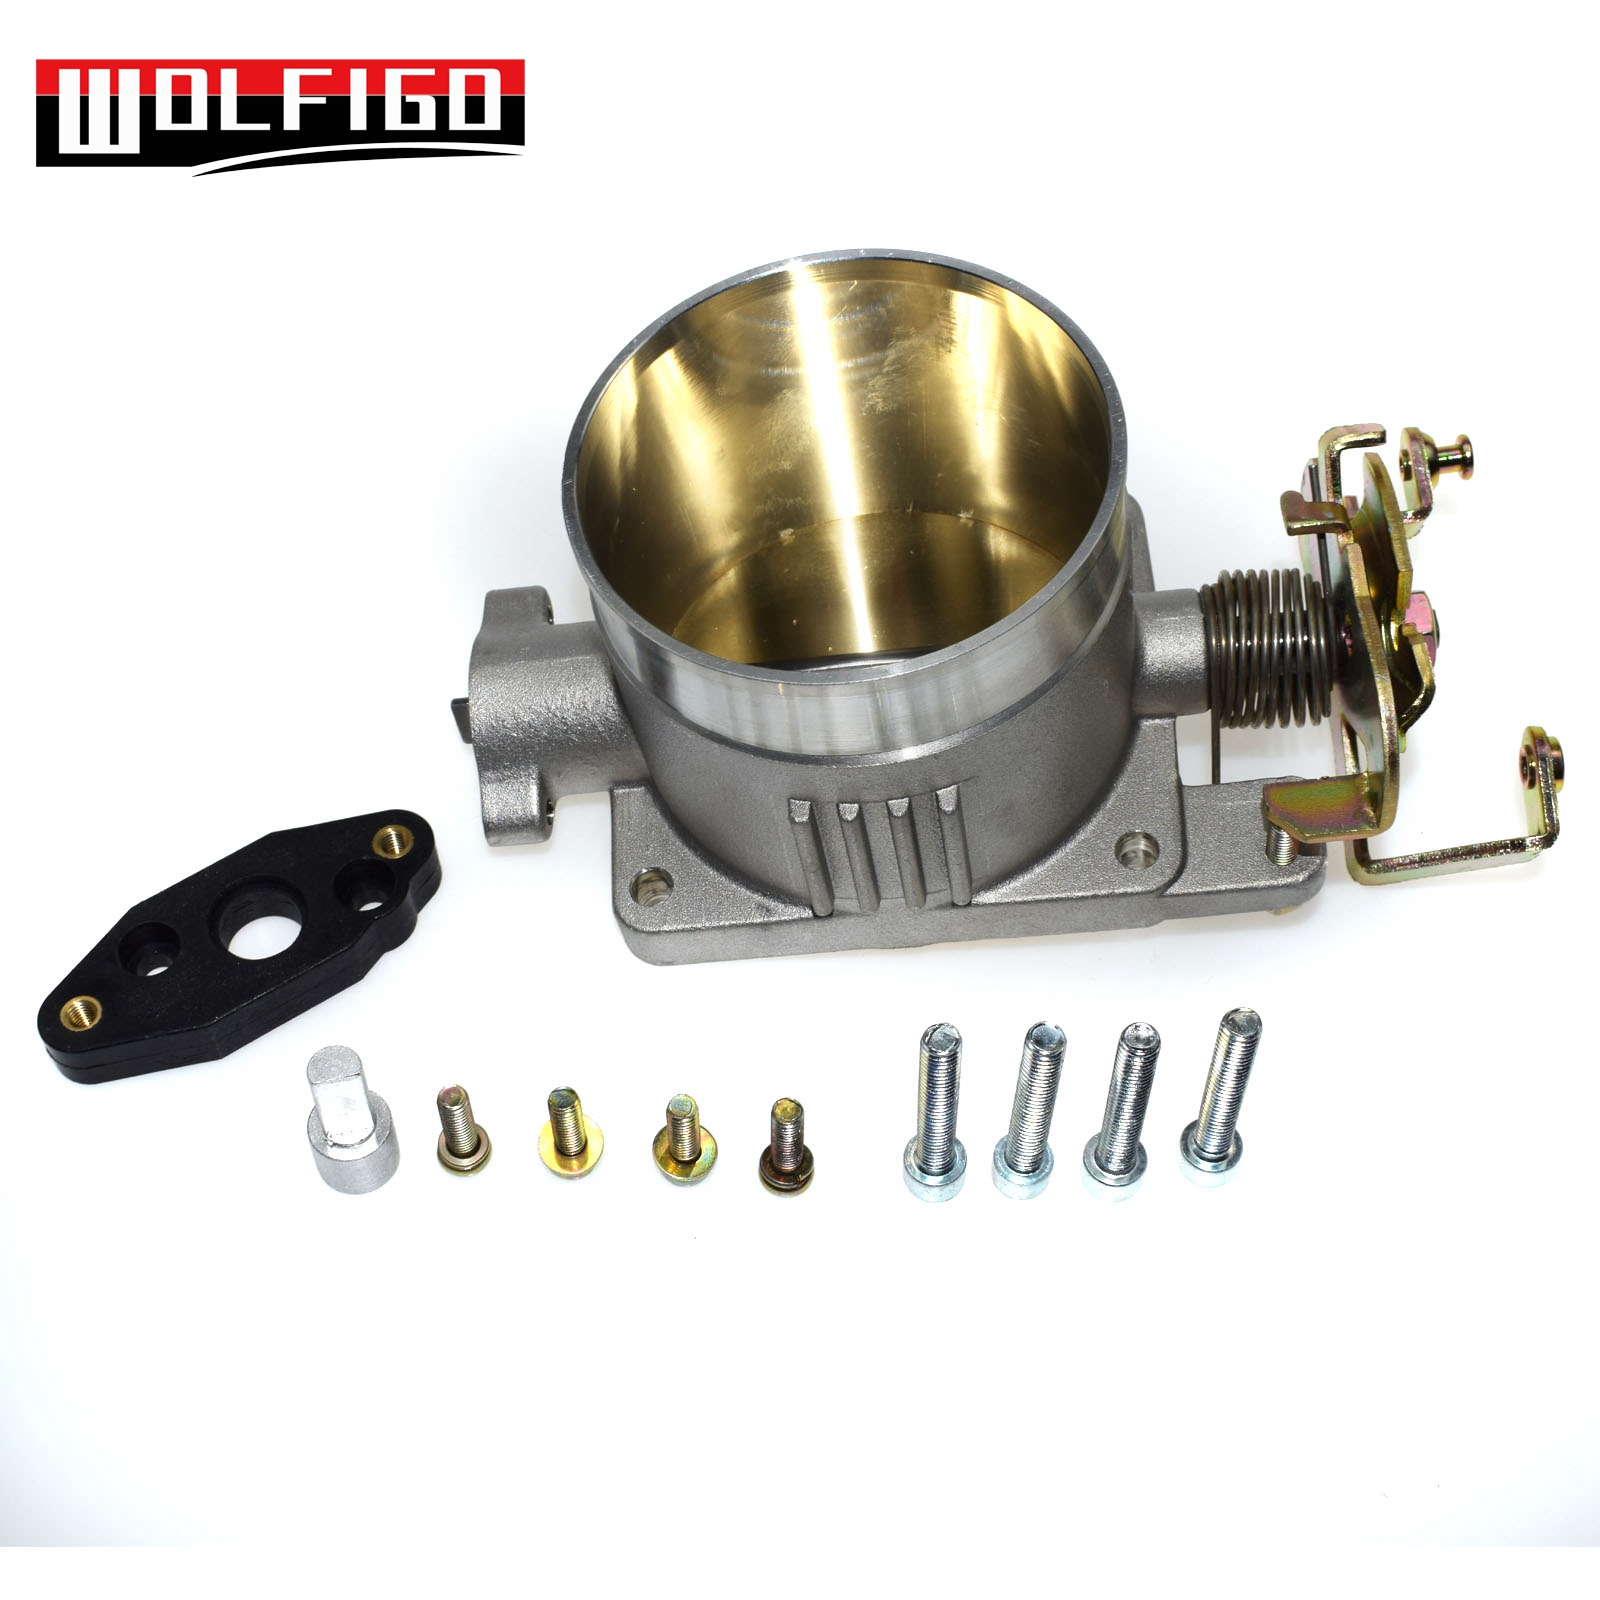 WOLFIGO New Throttle Body Direct Bolt Assembly fit for Ford Musang 4 6L 2V 75mm 1996